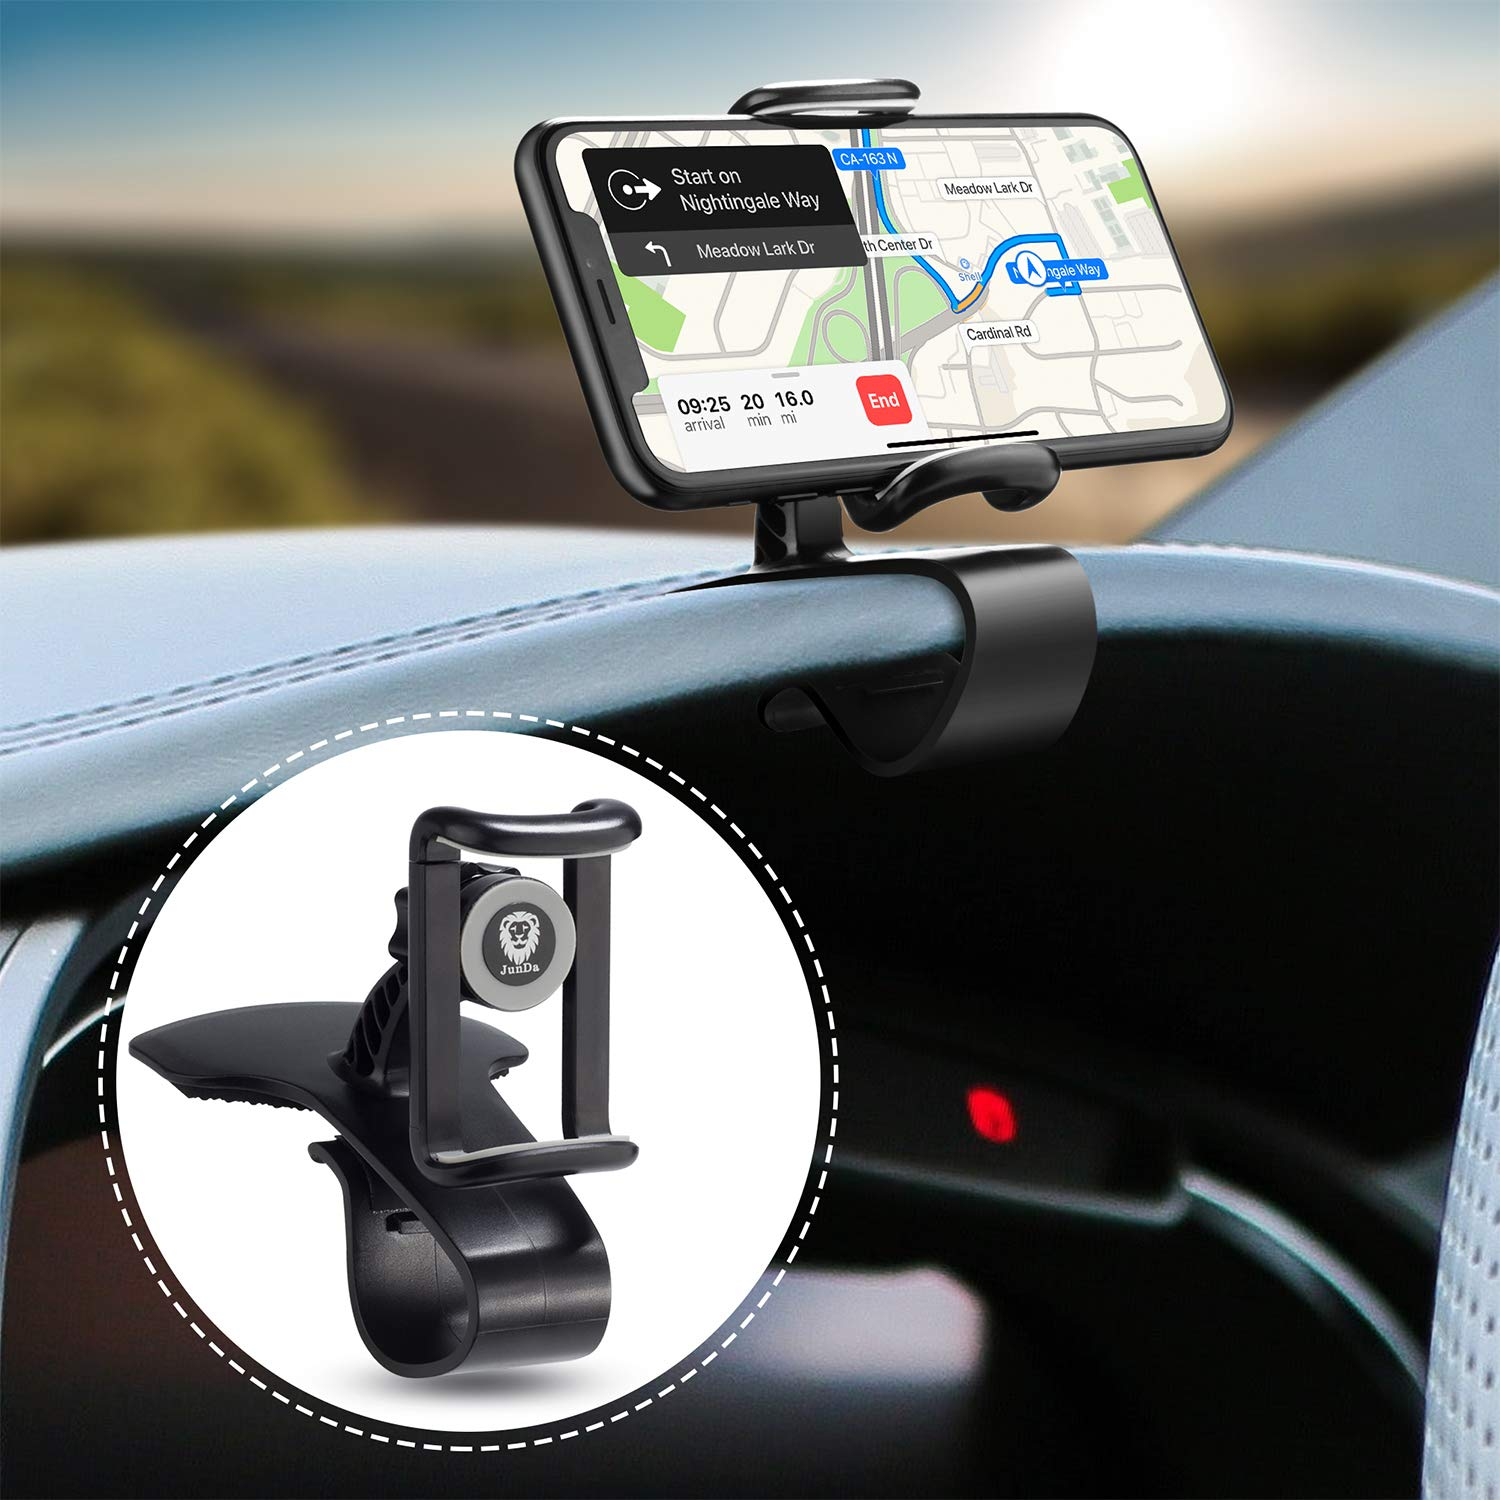 JunDa Car Phone Holder 360-Degree Rotation Cell Phone Holder Suitable for 4 to 6.5 inch Smartphones,Rotating Dashboard Clip Mount Stand